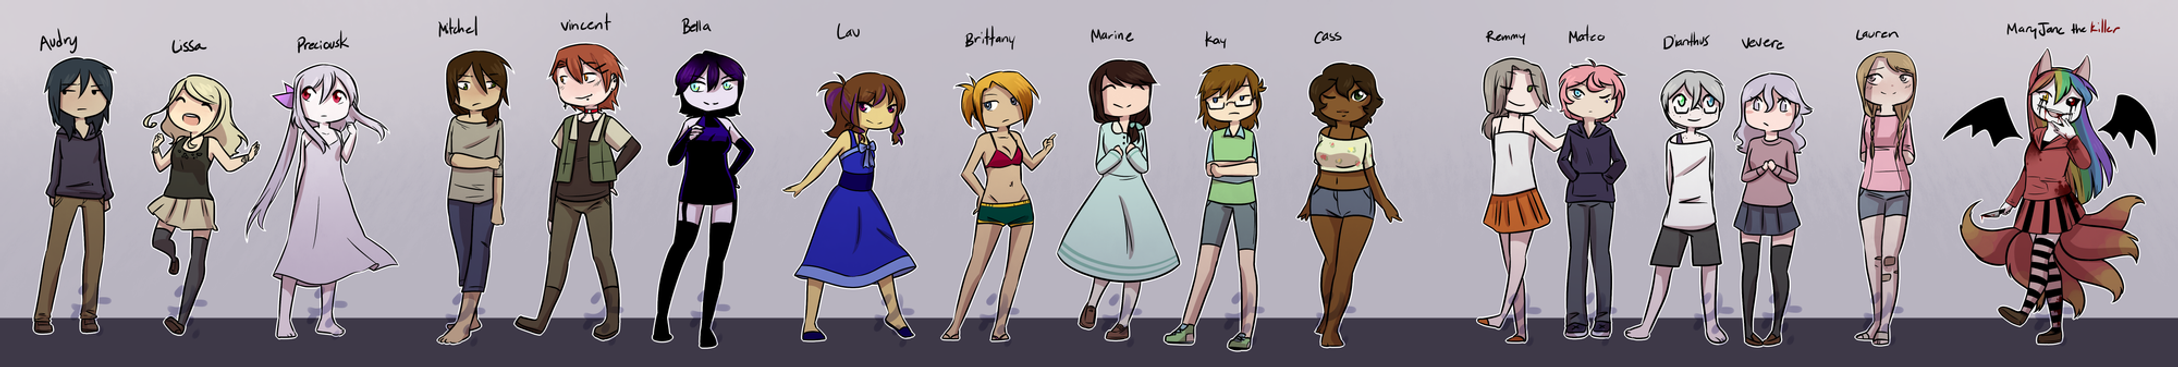 All the OCs by PreciousKnightwalker